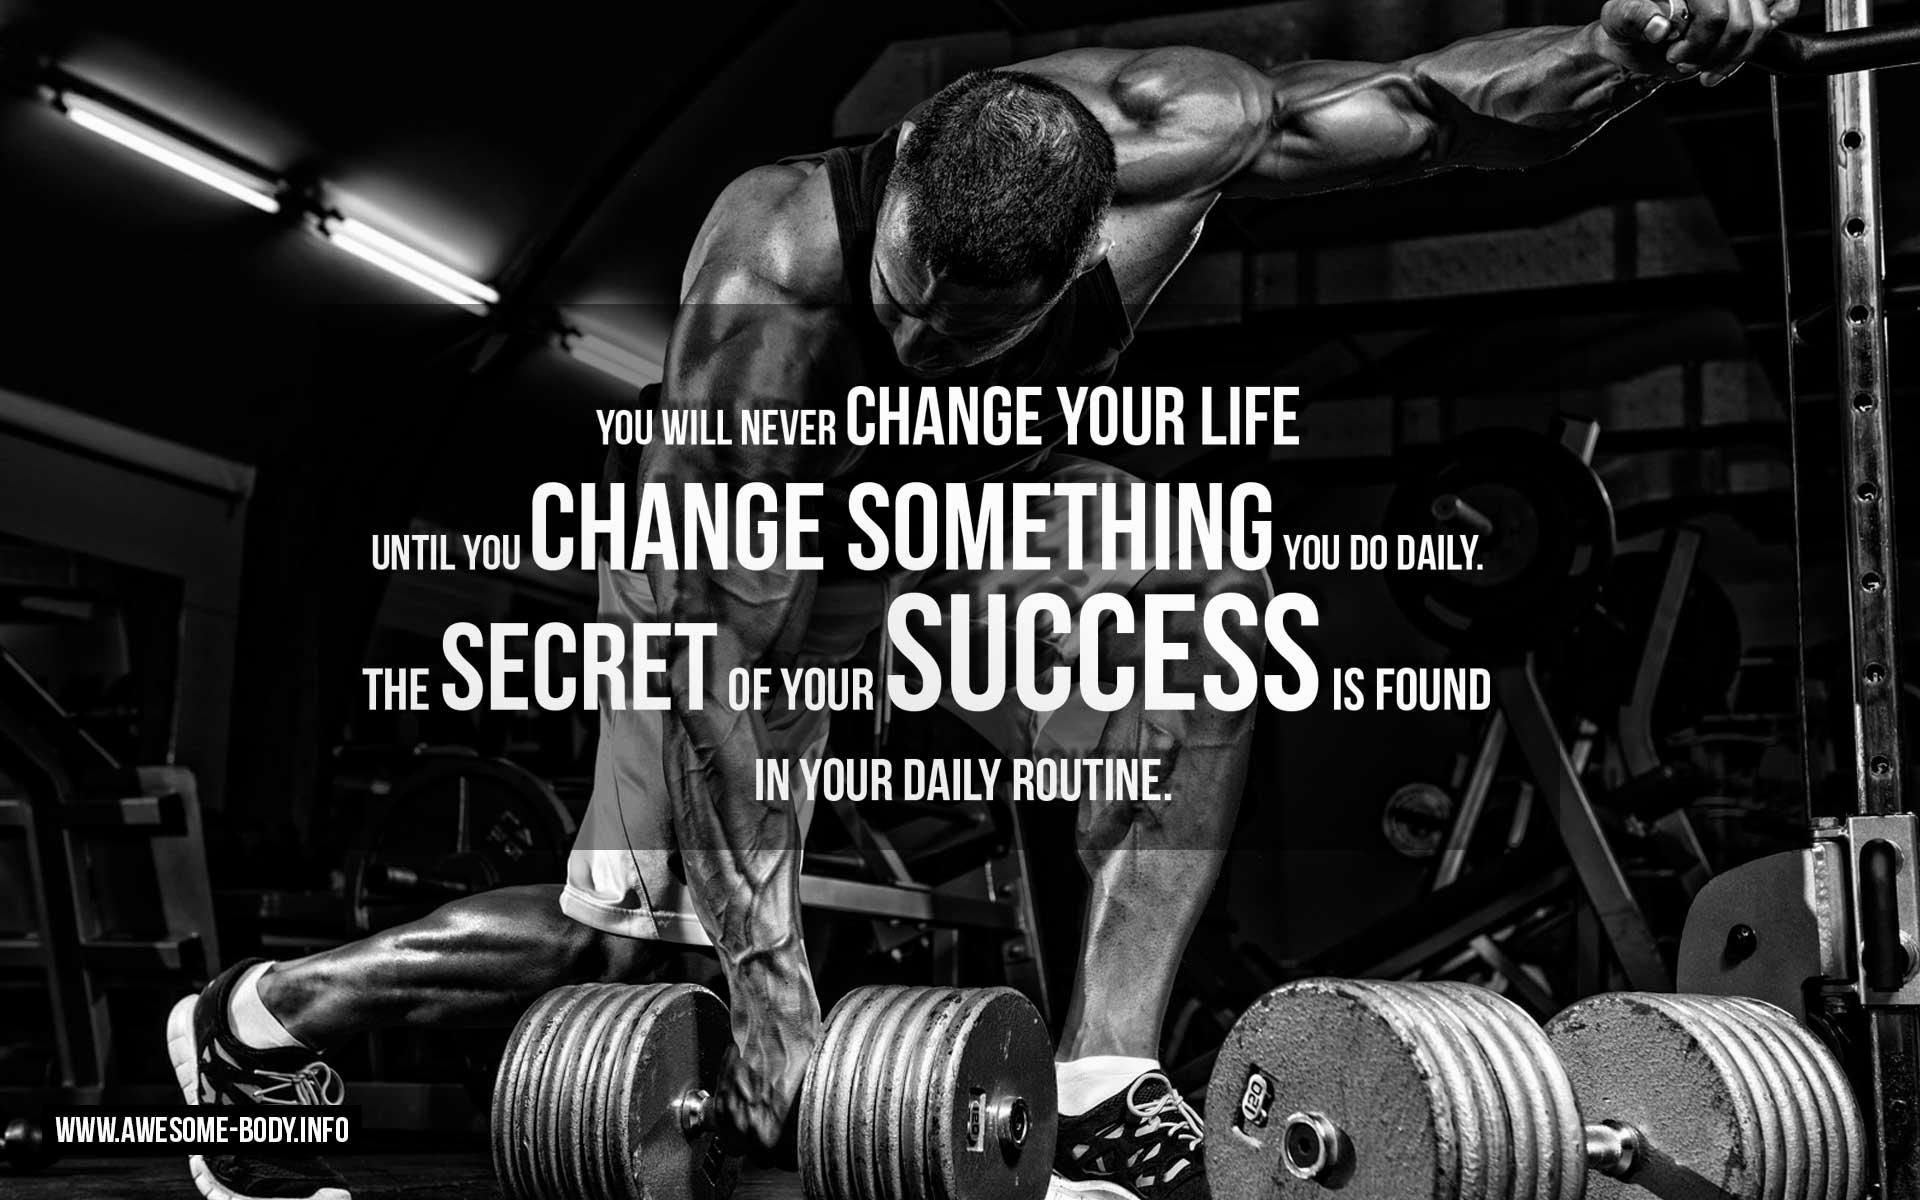 Bodybuilding Wallpapers Hd Wallpaper 1024 768 Wallpapers Bodybuilding 58 Wallpa Bodybuilding Quotes Bodybuilding Motivation Wallpaper Bodybuilding Motivation